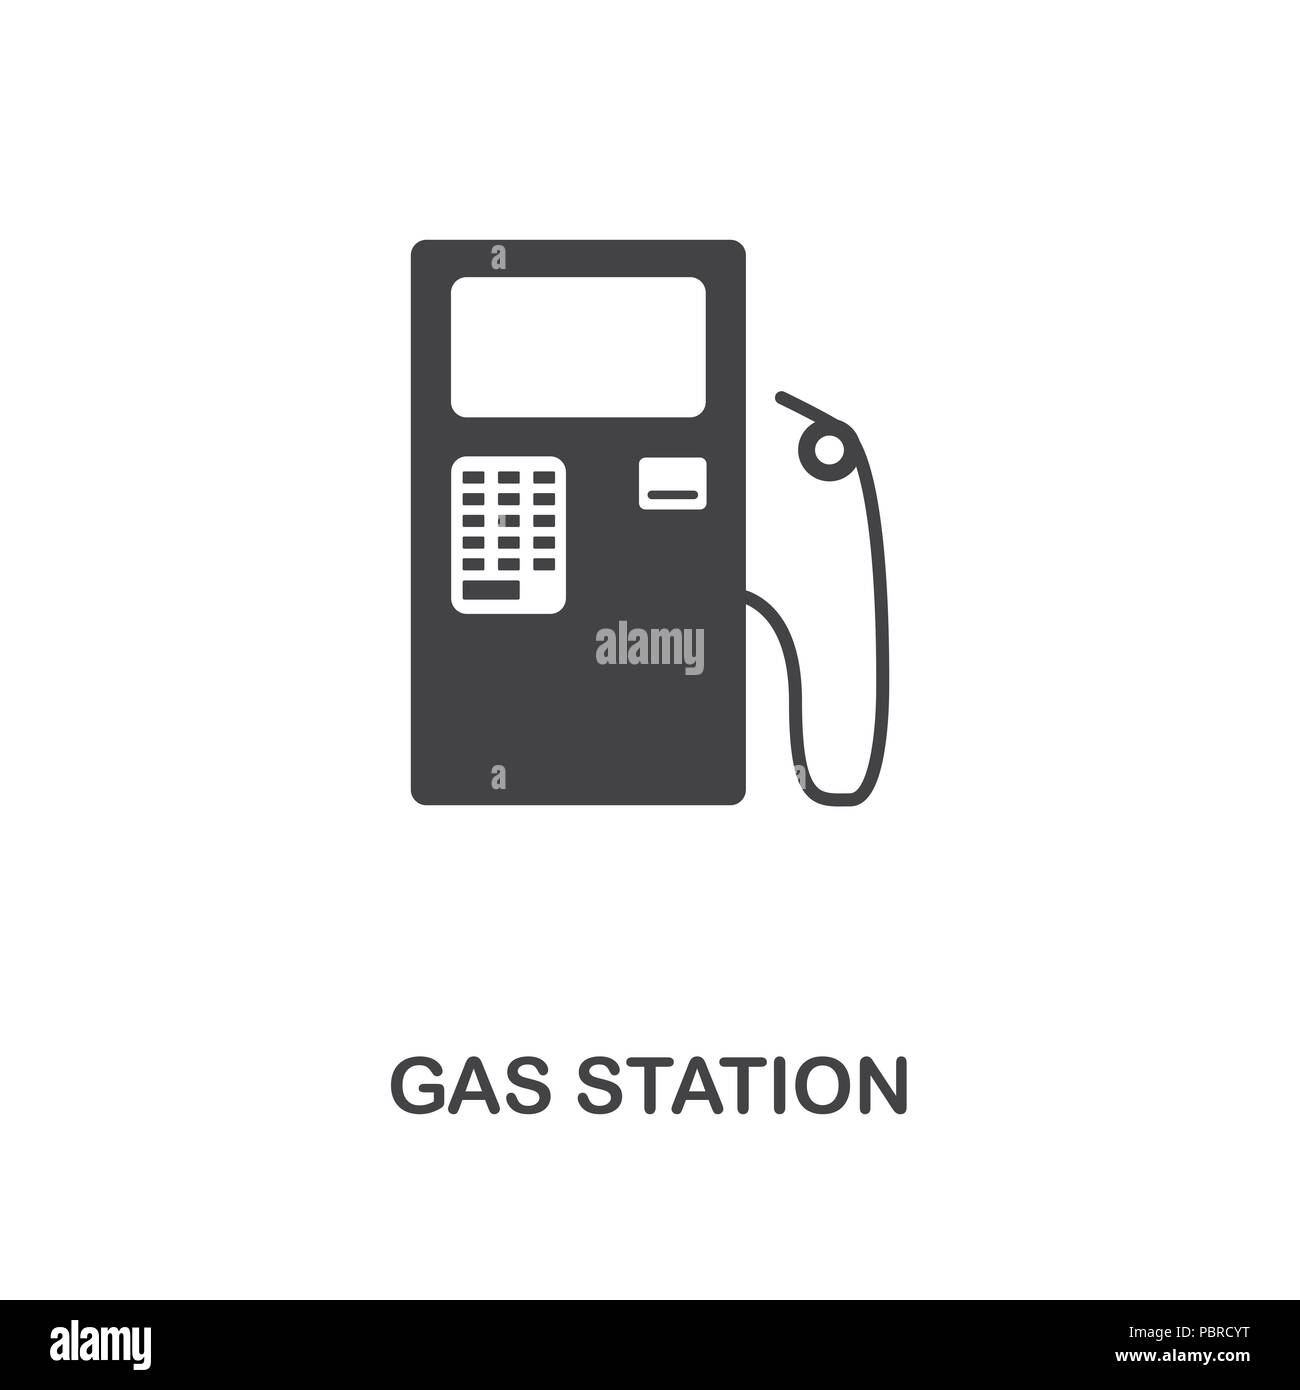 Gas Station Creative Icon Simple Element Illustration Gas Station